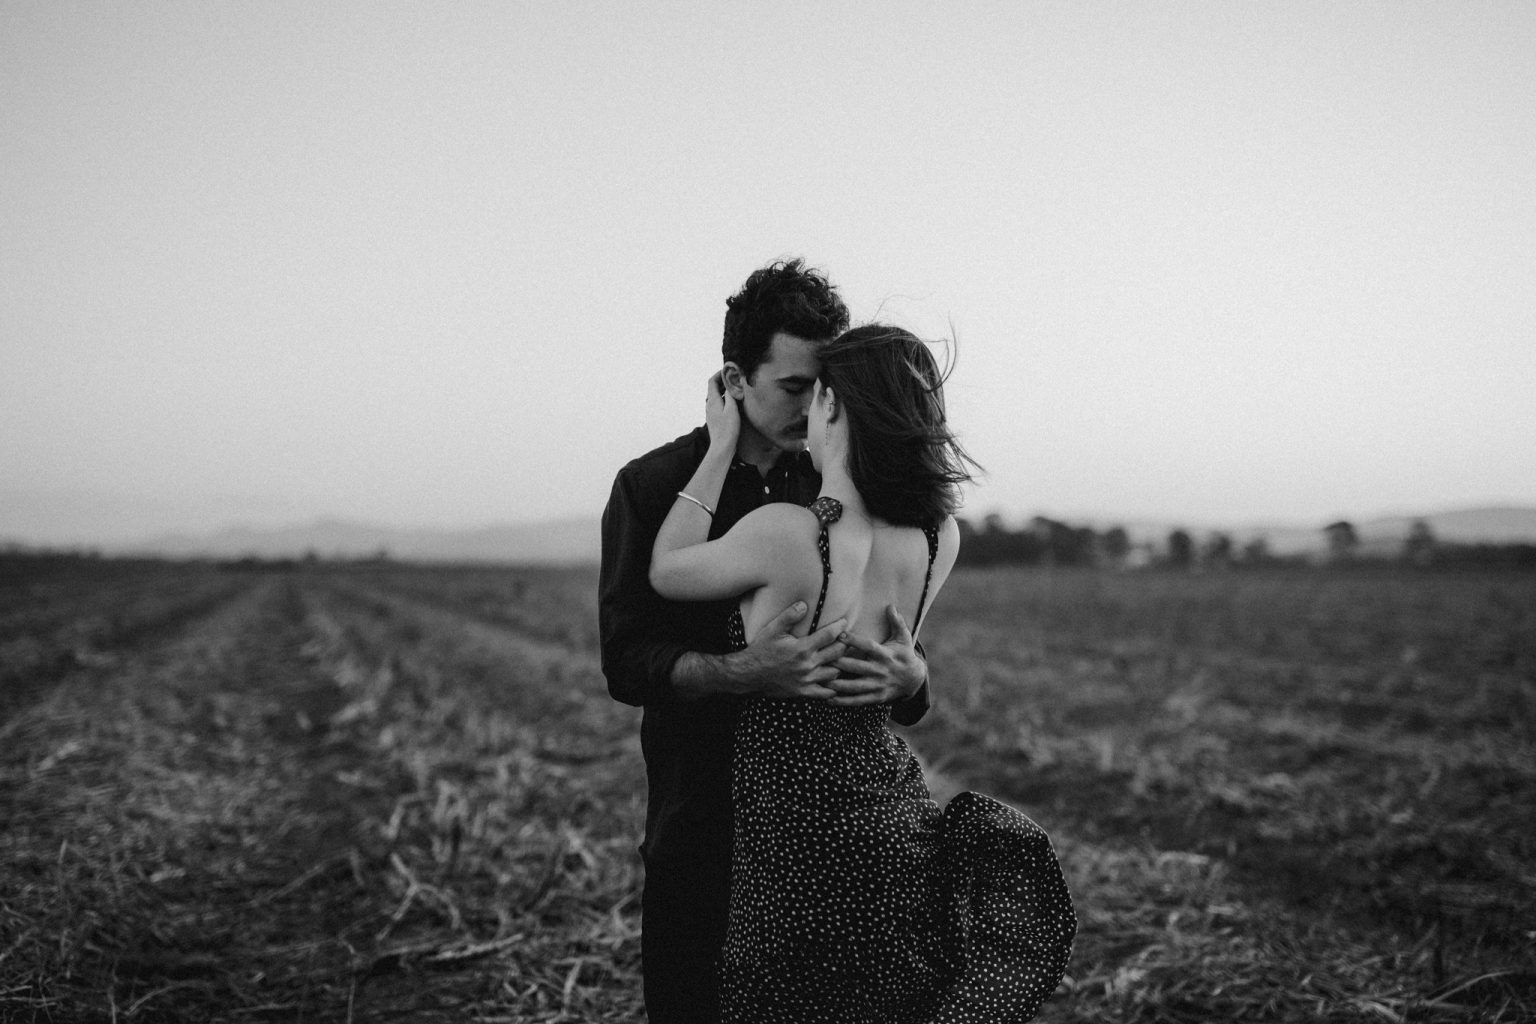 Man and woman hugging in field sexy